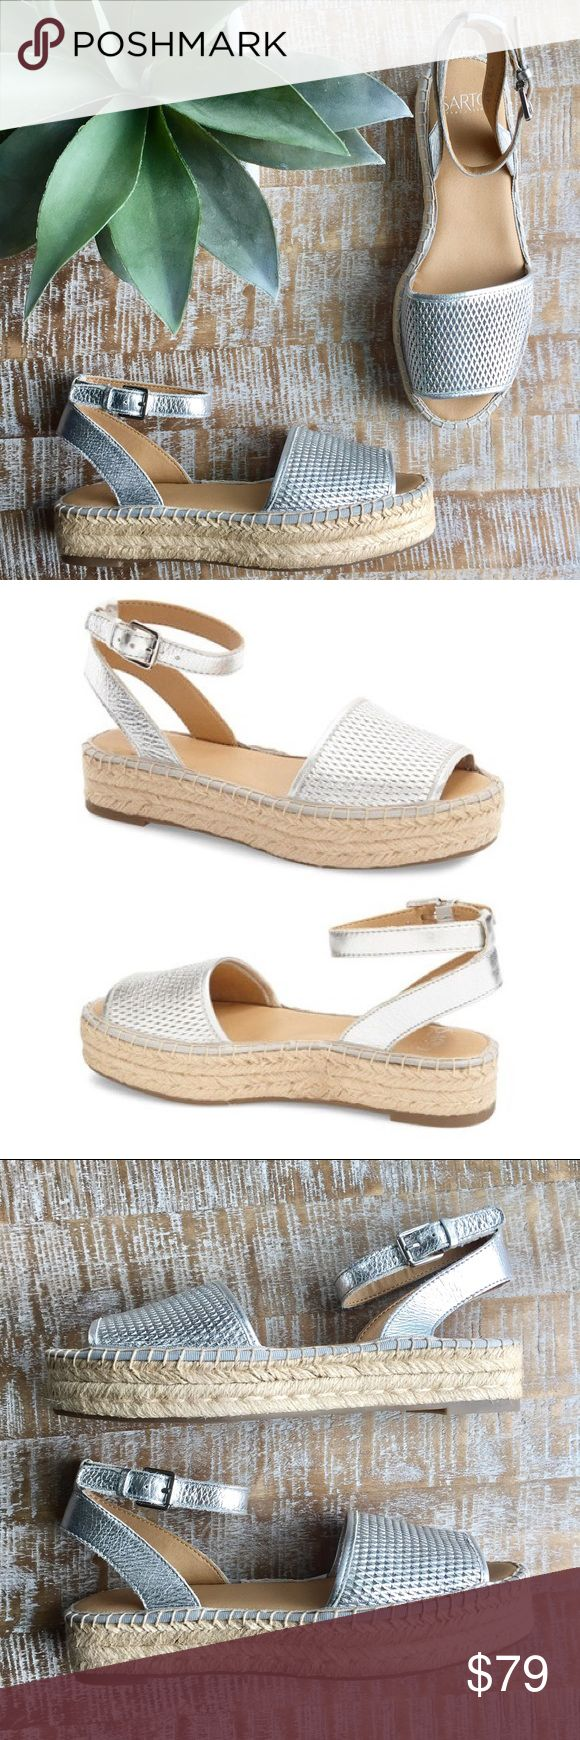 """Franco Sarto Espadrille Platform Sandal NWOB Franco Sarto 'Ravenna' Espadrille Platform Sandal in silver. Size 8.5 Brand new, never worn just didn't keep the box ! 1.5"""" platform with adjustable ankle strap, ankle strap approximately 3.5"""" in height. Perfect for the spring and summer months  Franco Sarto Shoes Espadrilles"""